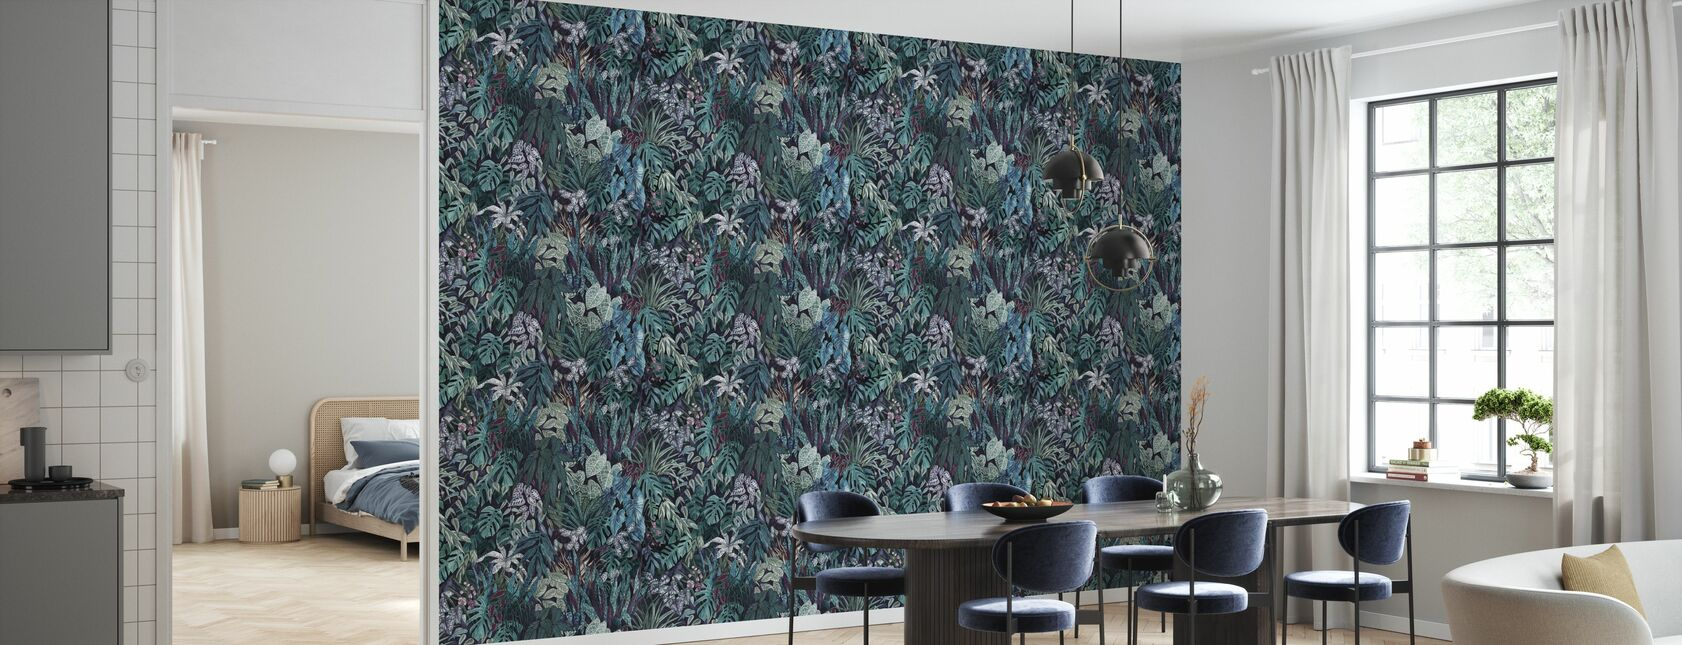 Tanglewood Forest Veridian - Wallpaper - Kitchen